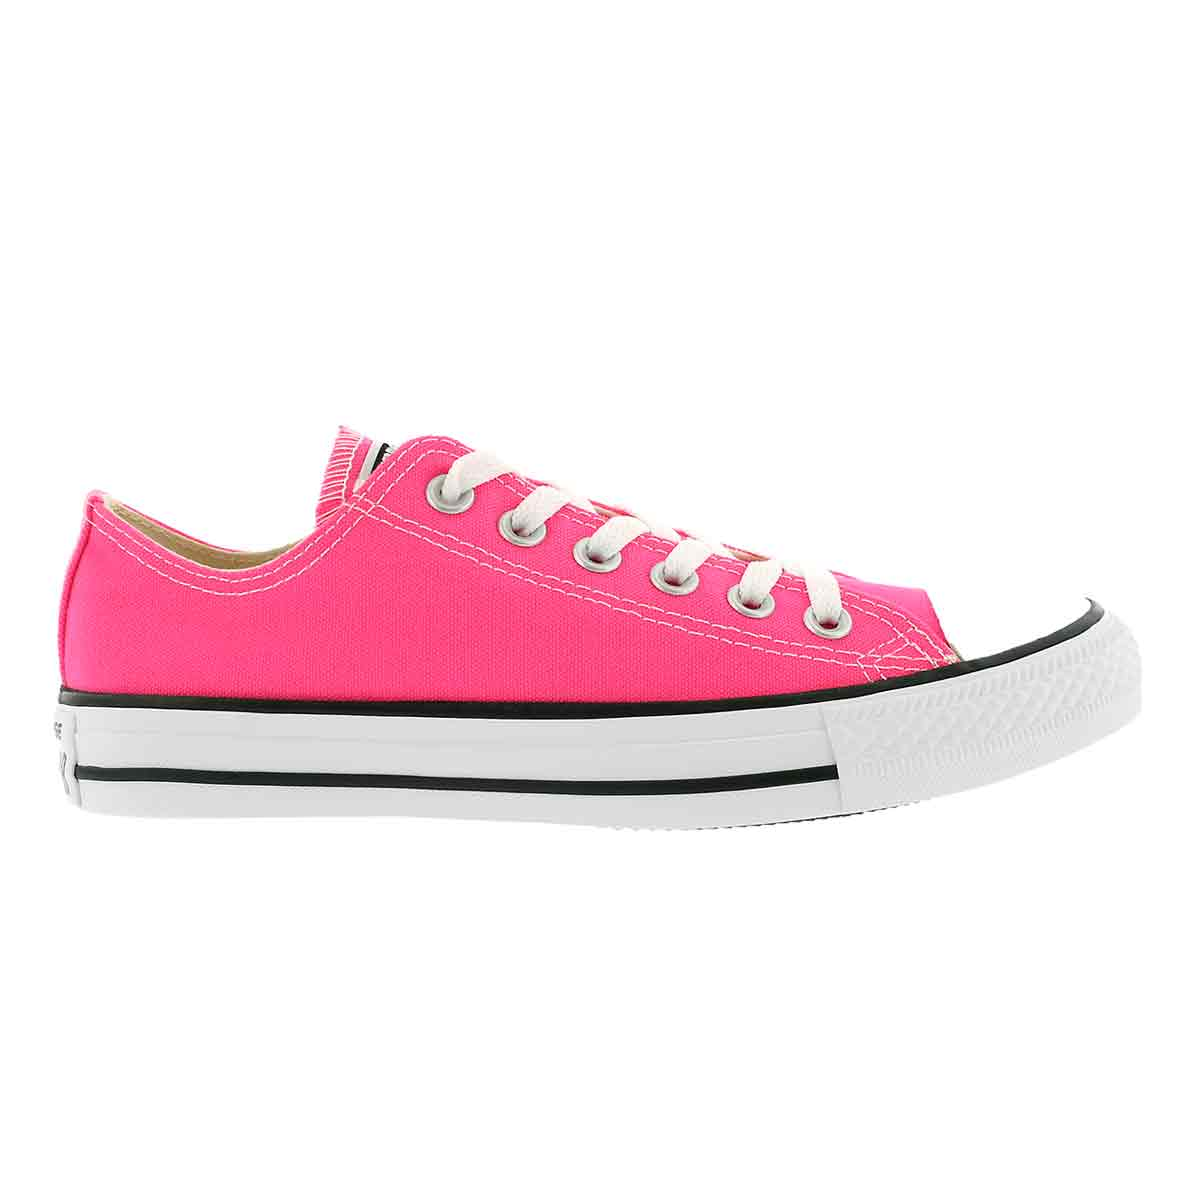 Lds CT A/S Seasonal pink pow sneaker